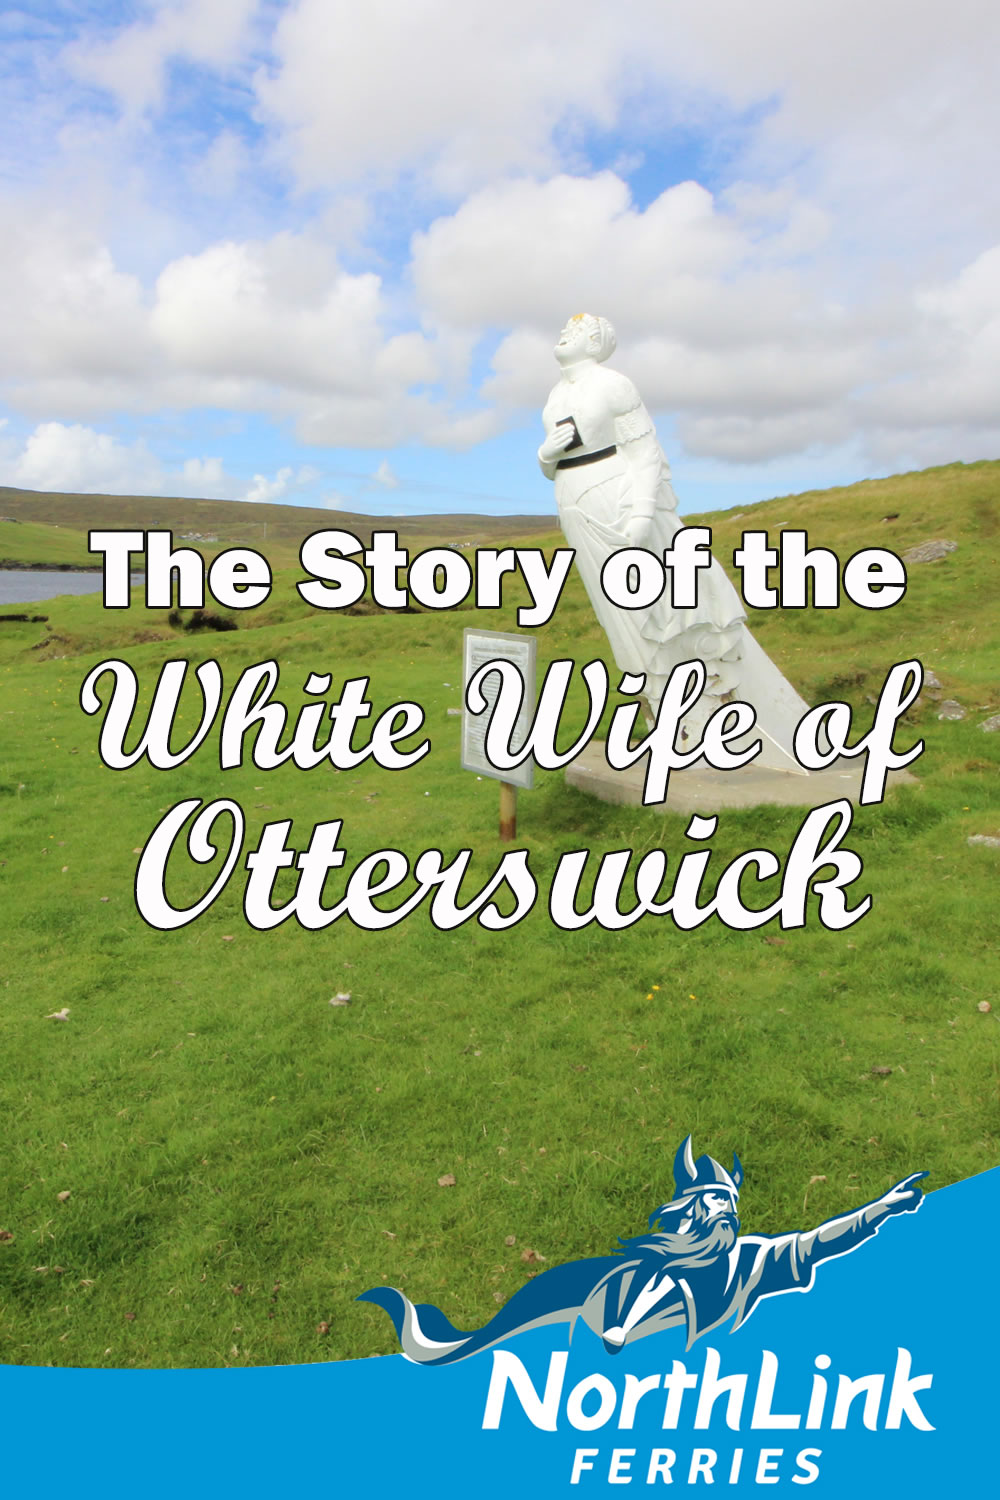 The Story of the White Wife of Otterswick